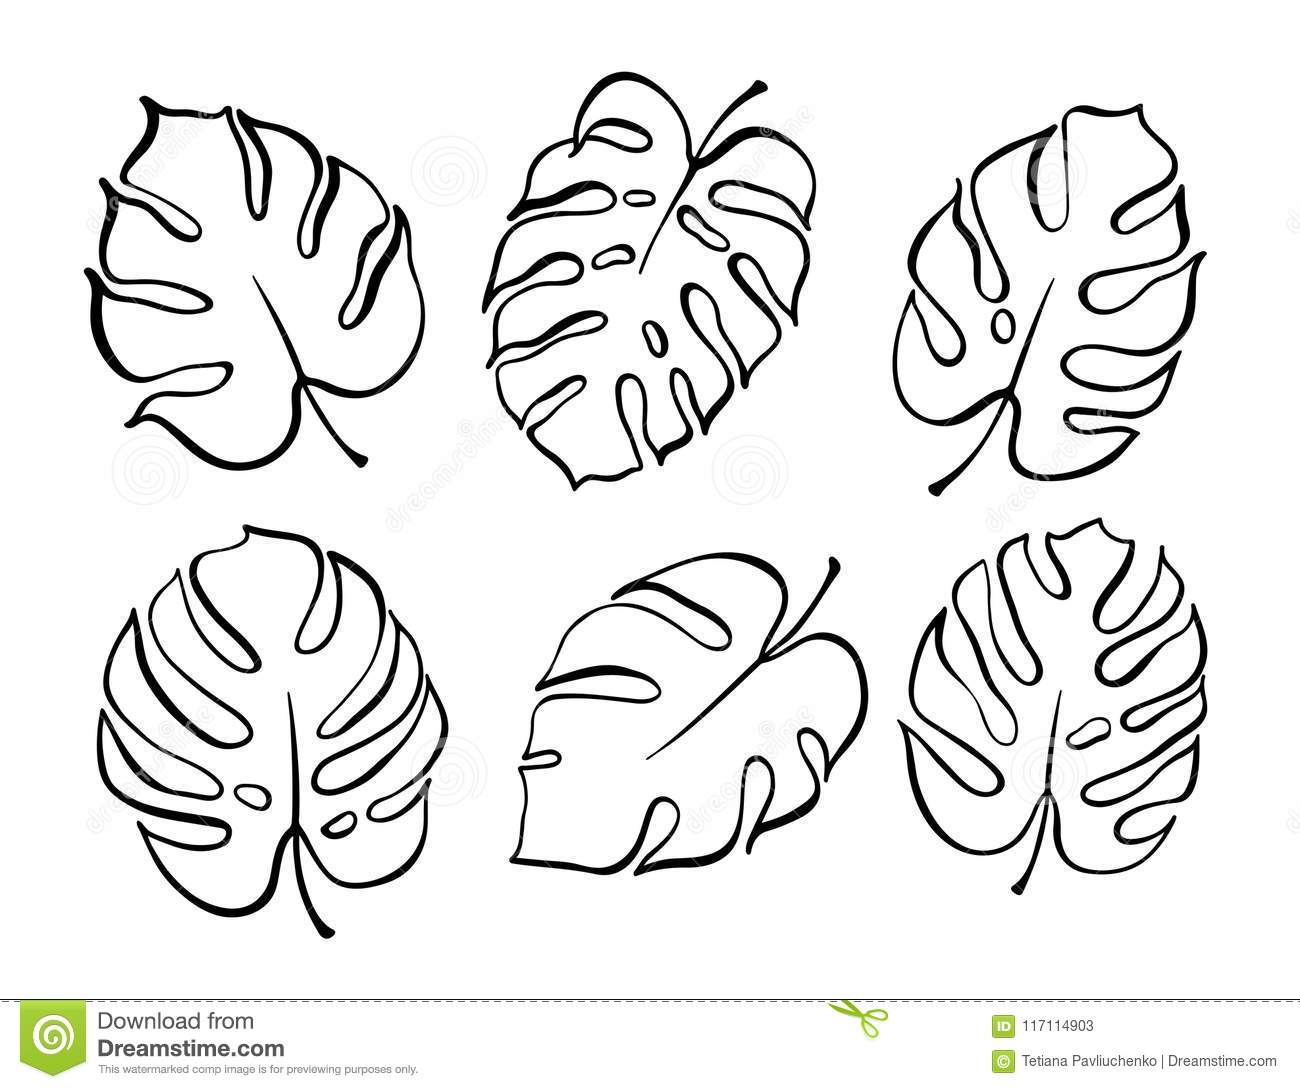 Vector Botanical Illustration Of Monstera Leaf Stock Vector Illustration Of Abstract Botany 117114903 Monstera leaf icon, outline style. https www dreamstime com vector botanical illustration monstera leaf isolated outline drawing modern tropical plant set exotic palm leaves silhouettes image117114903